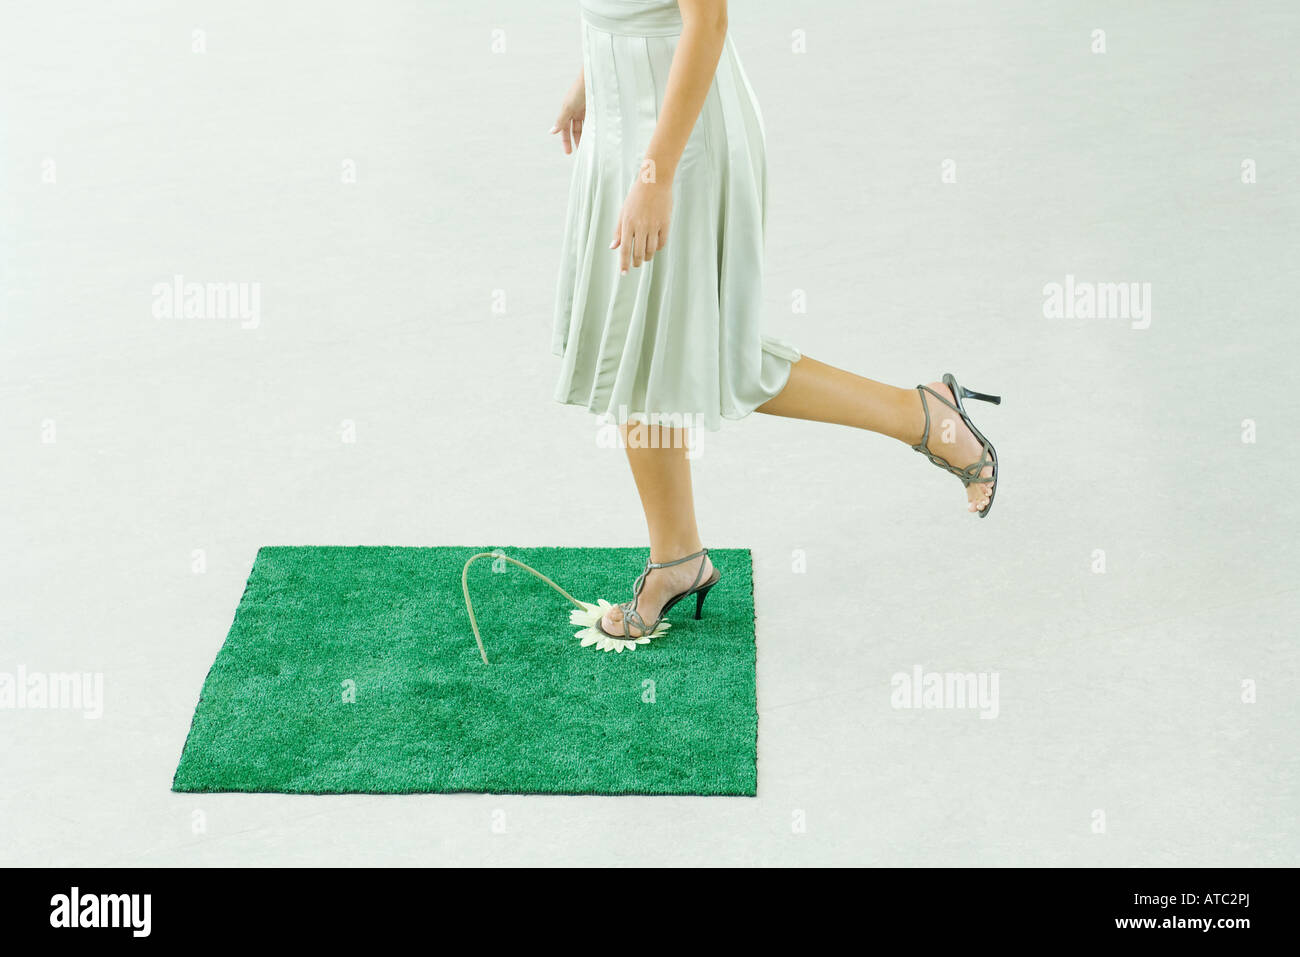 Woman stepping on flower in square of artificial turf, waist down - Stock Image